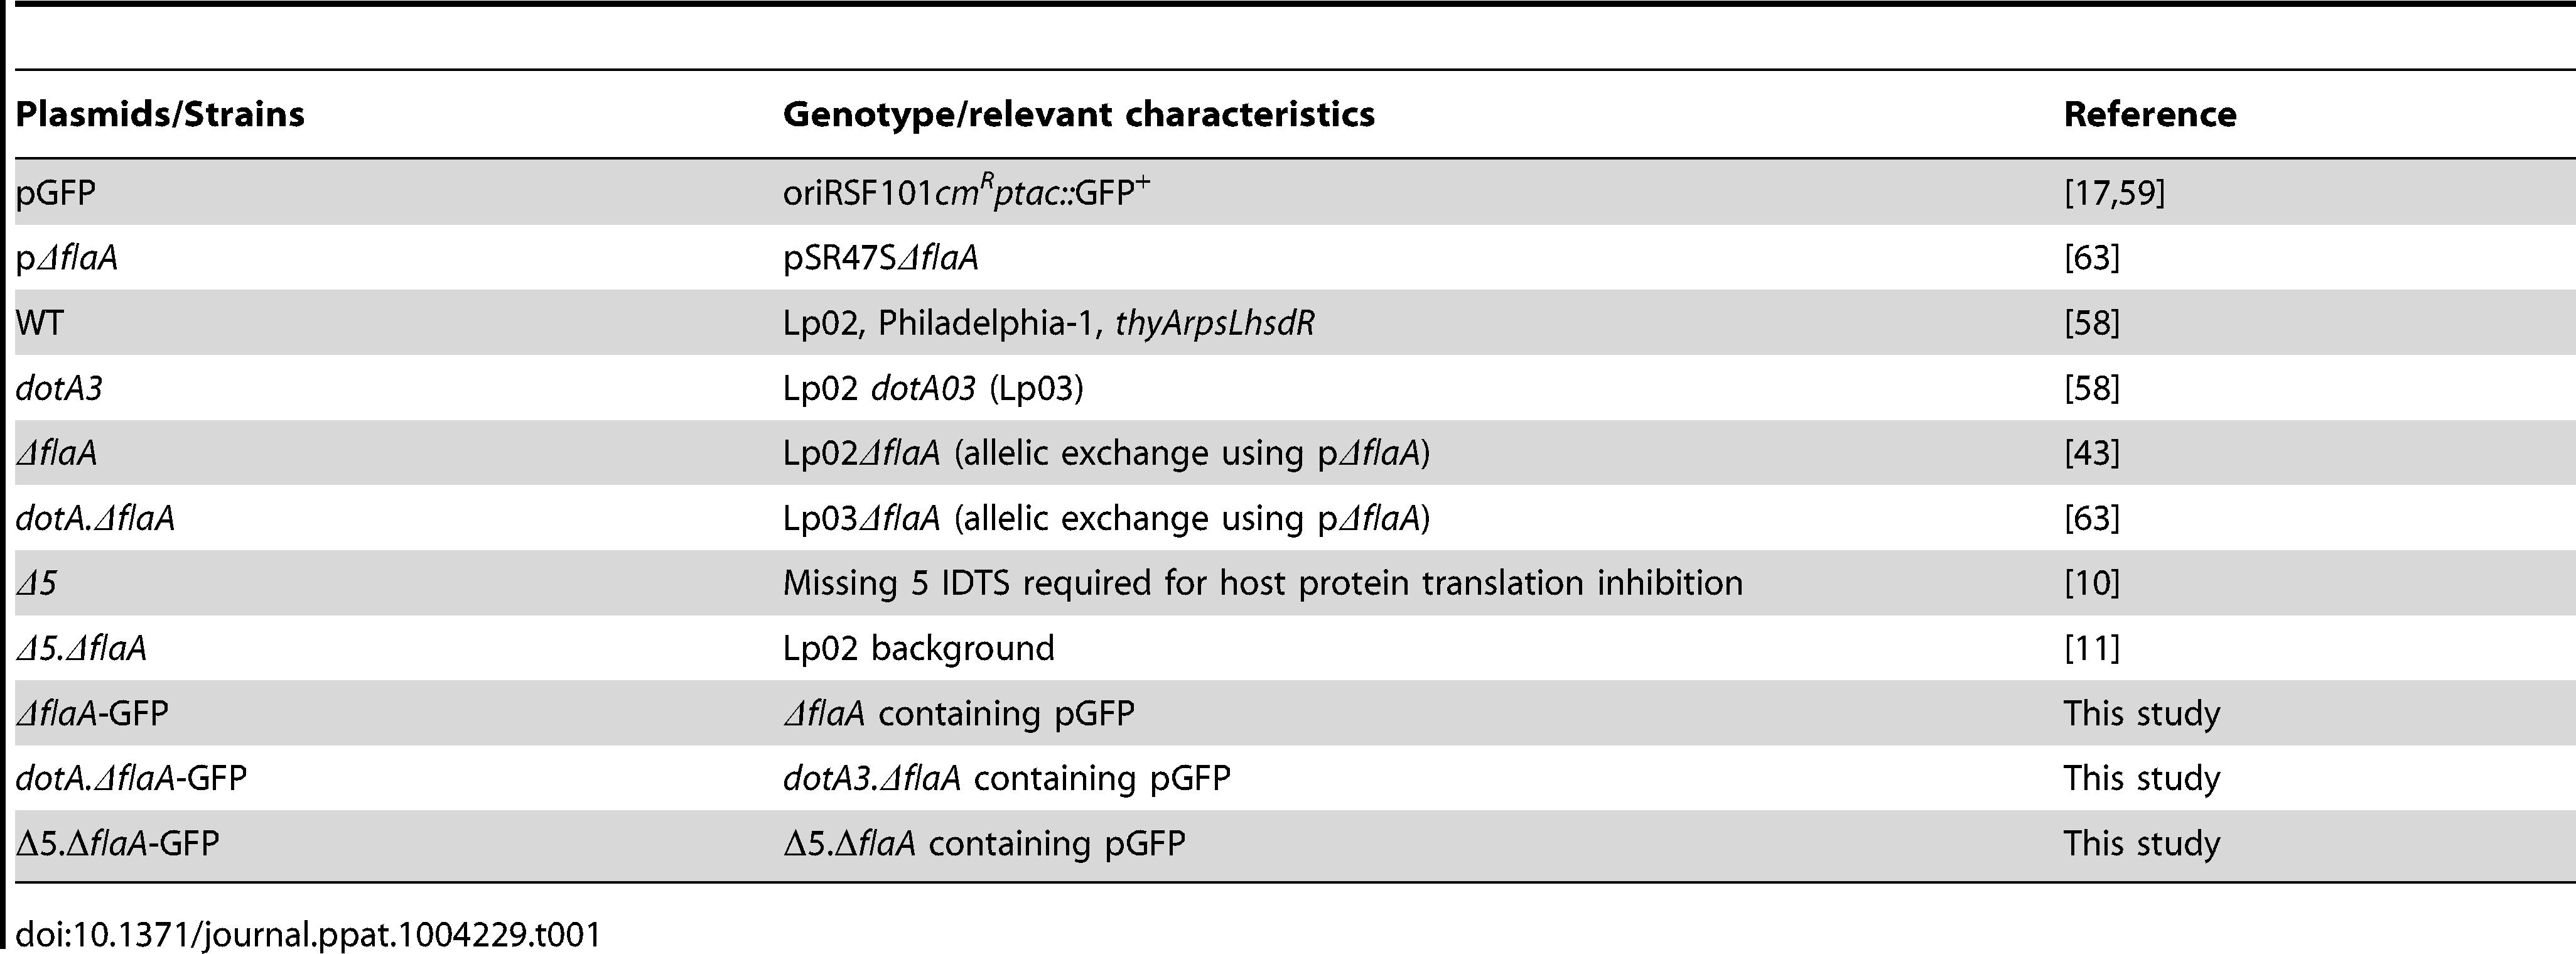 Plasmids and strains used in this study.